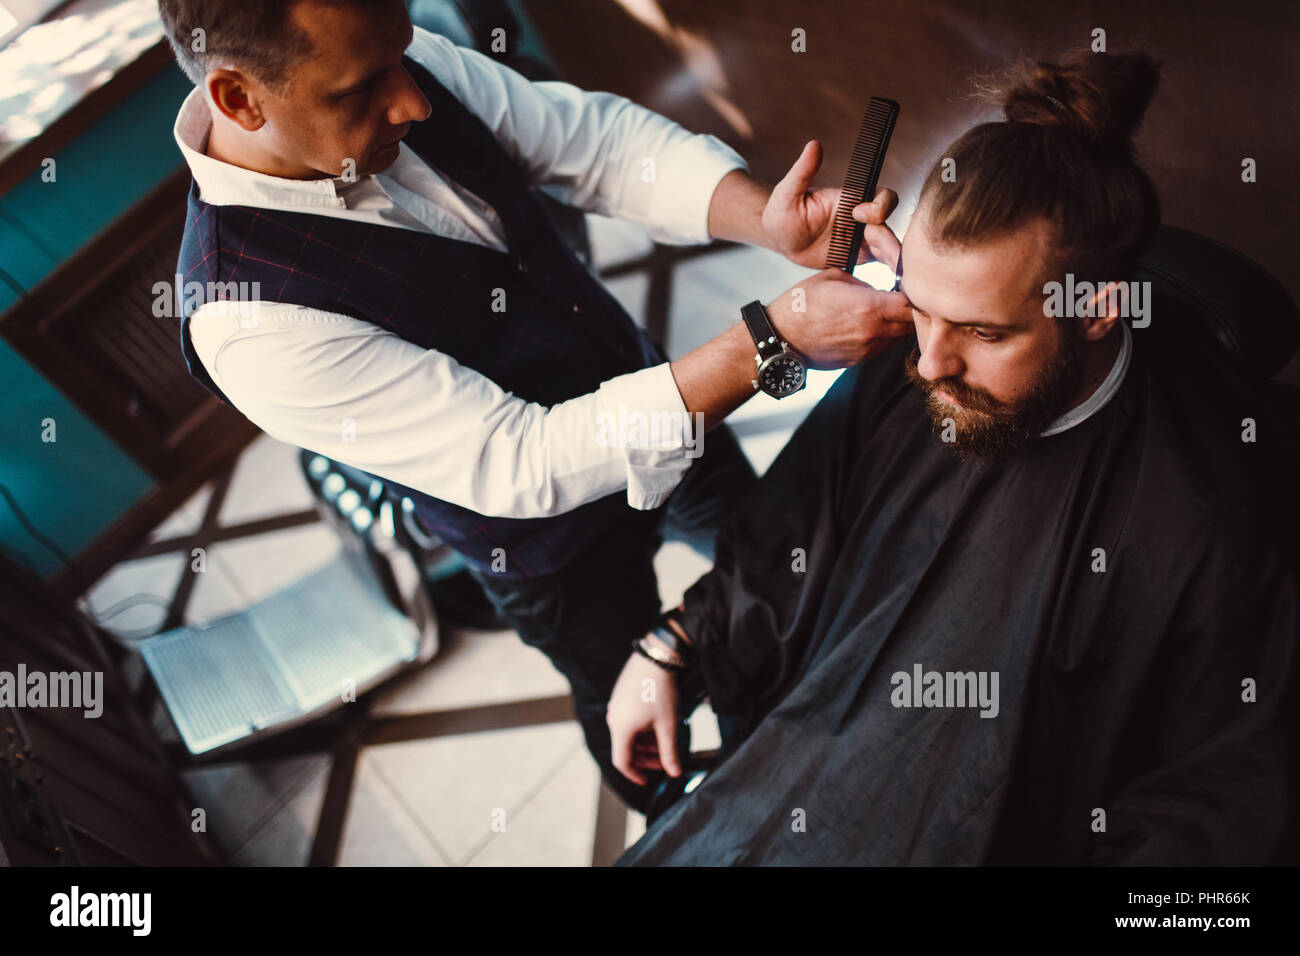 Barbershop with wooden interior. Bearded model man and barber - Stock Image